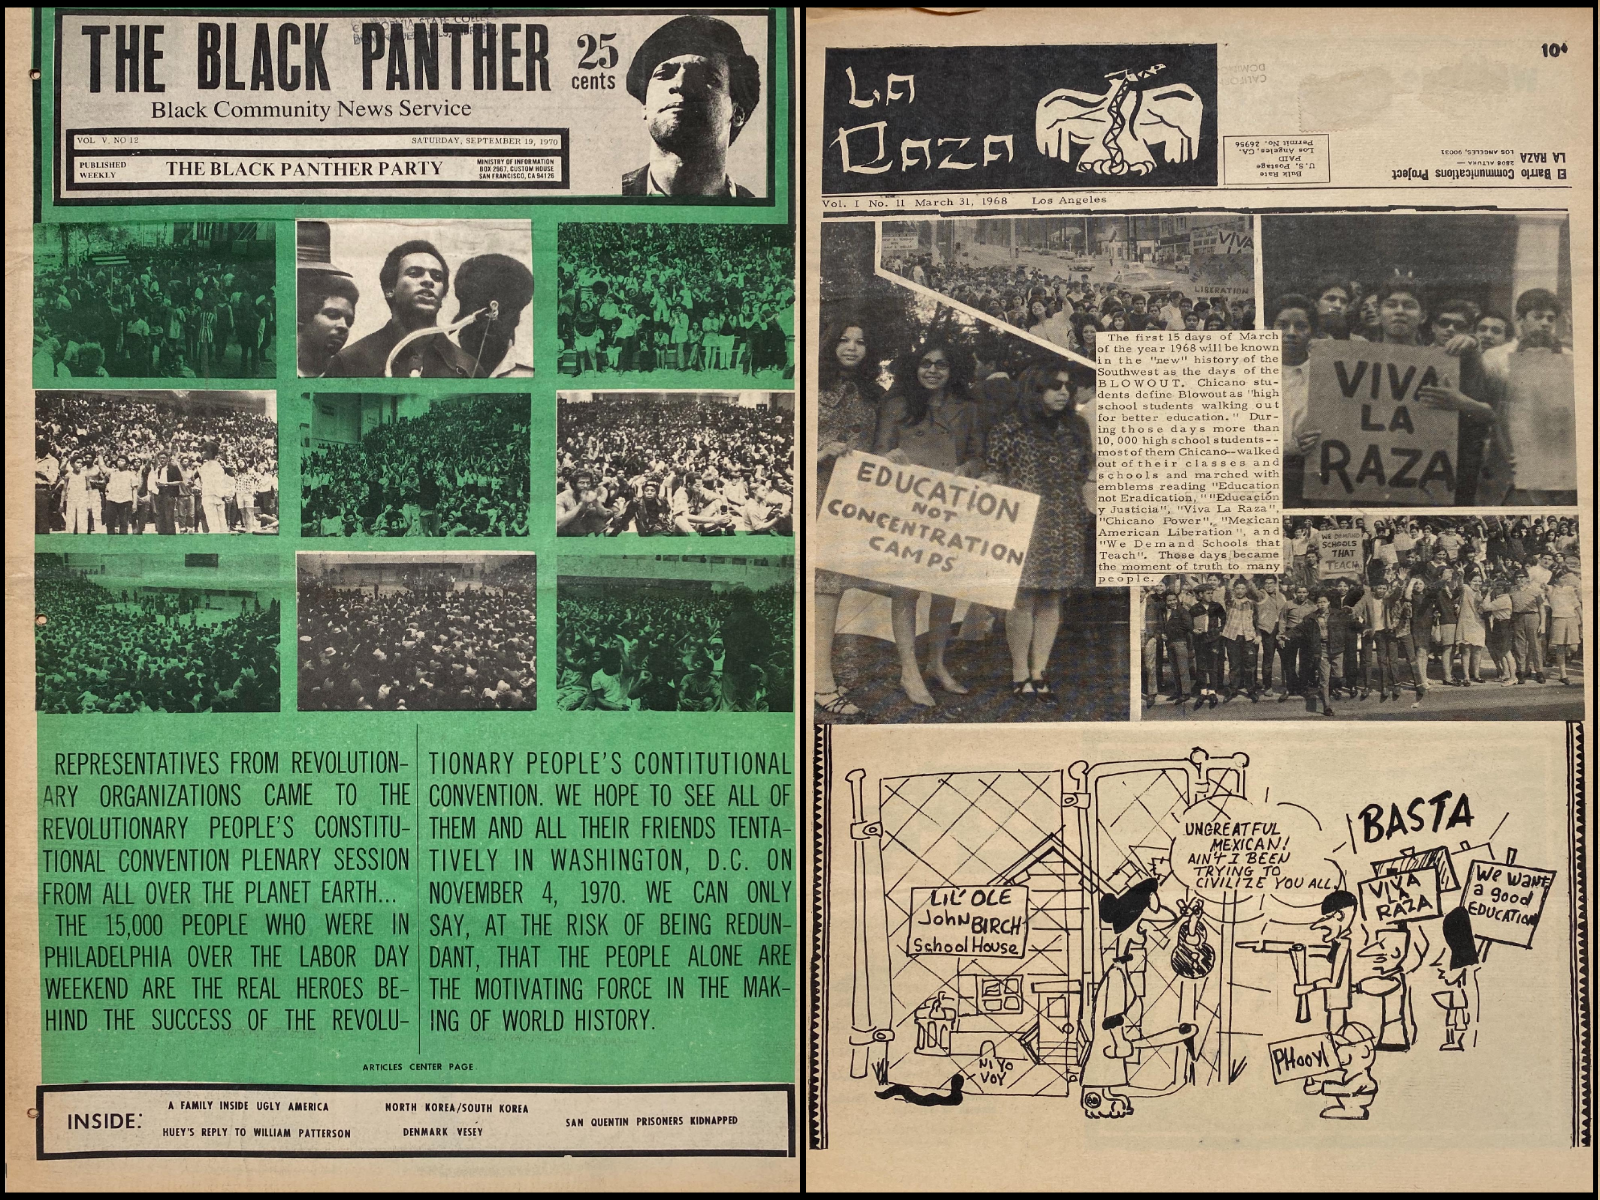 Black Panther and La Raza newspaper covers